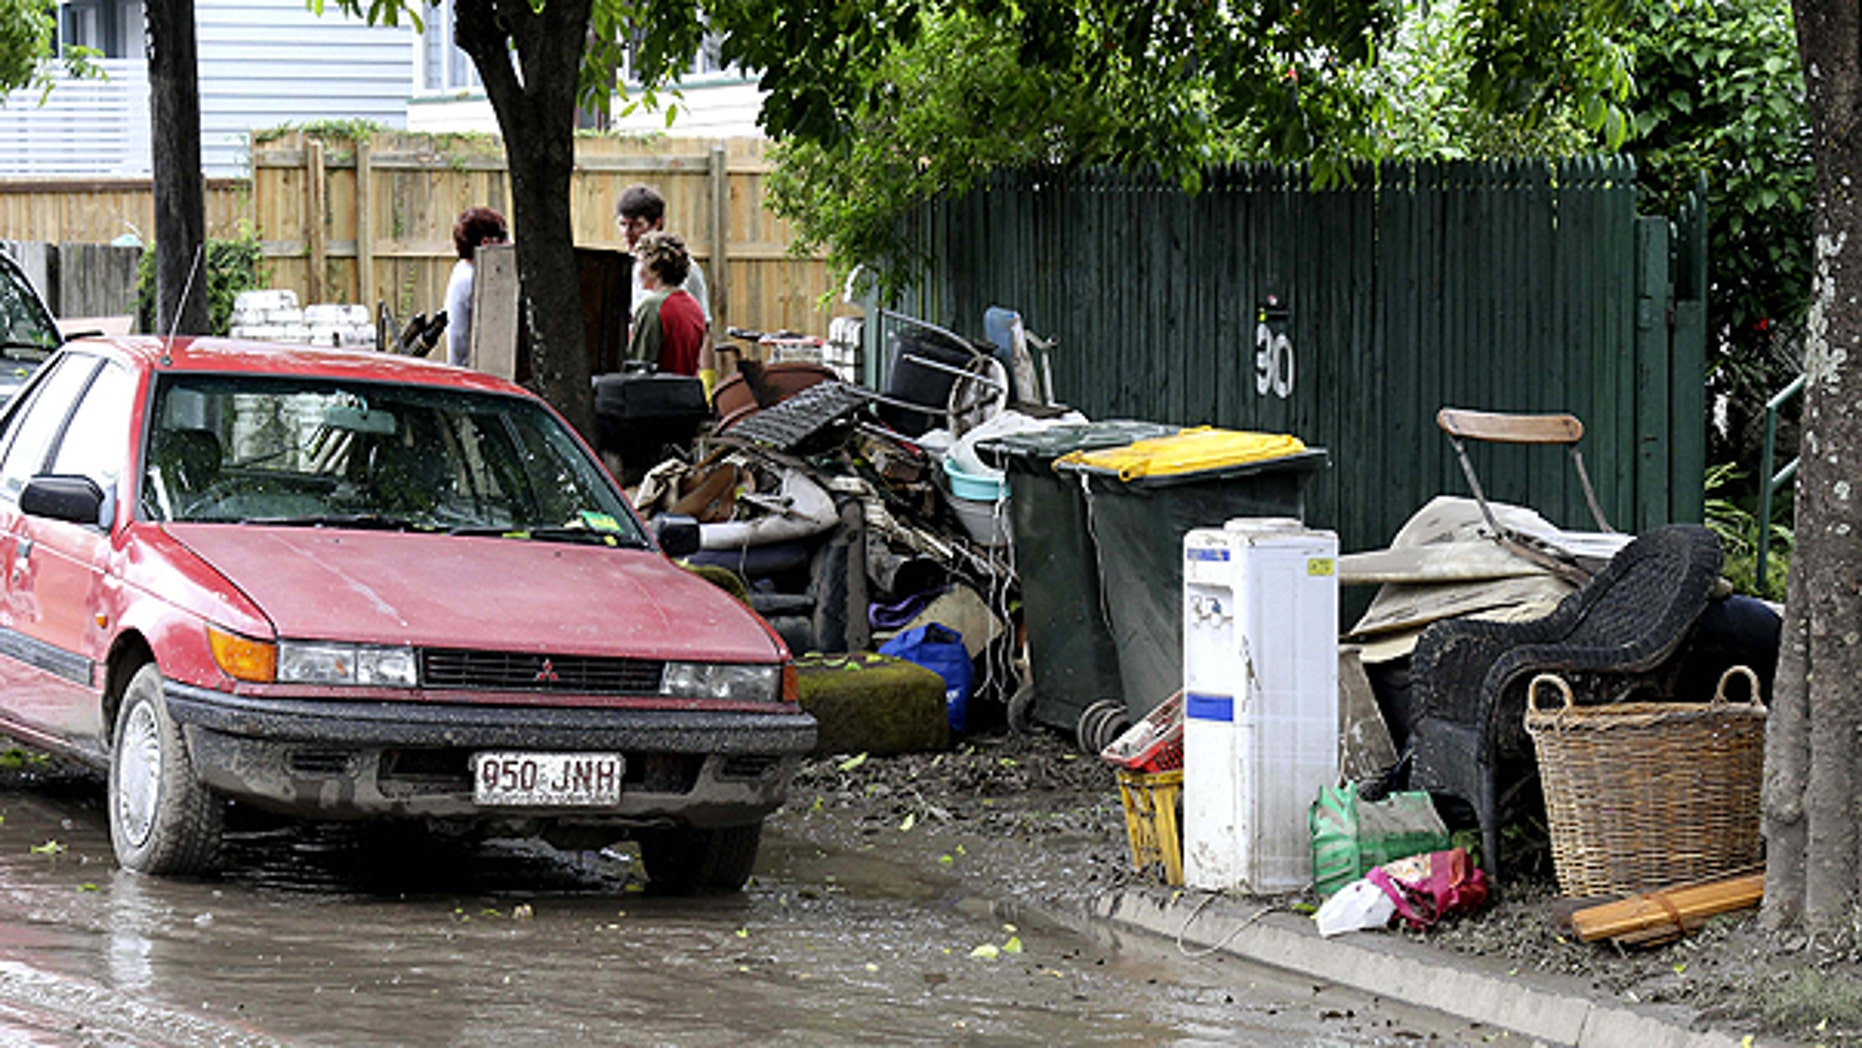 Jan. 14: Damaged goods await removal in front of a flooded home in Brisbane, Australia.